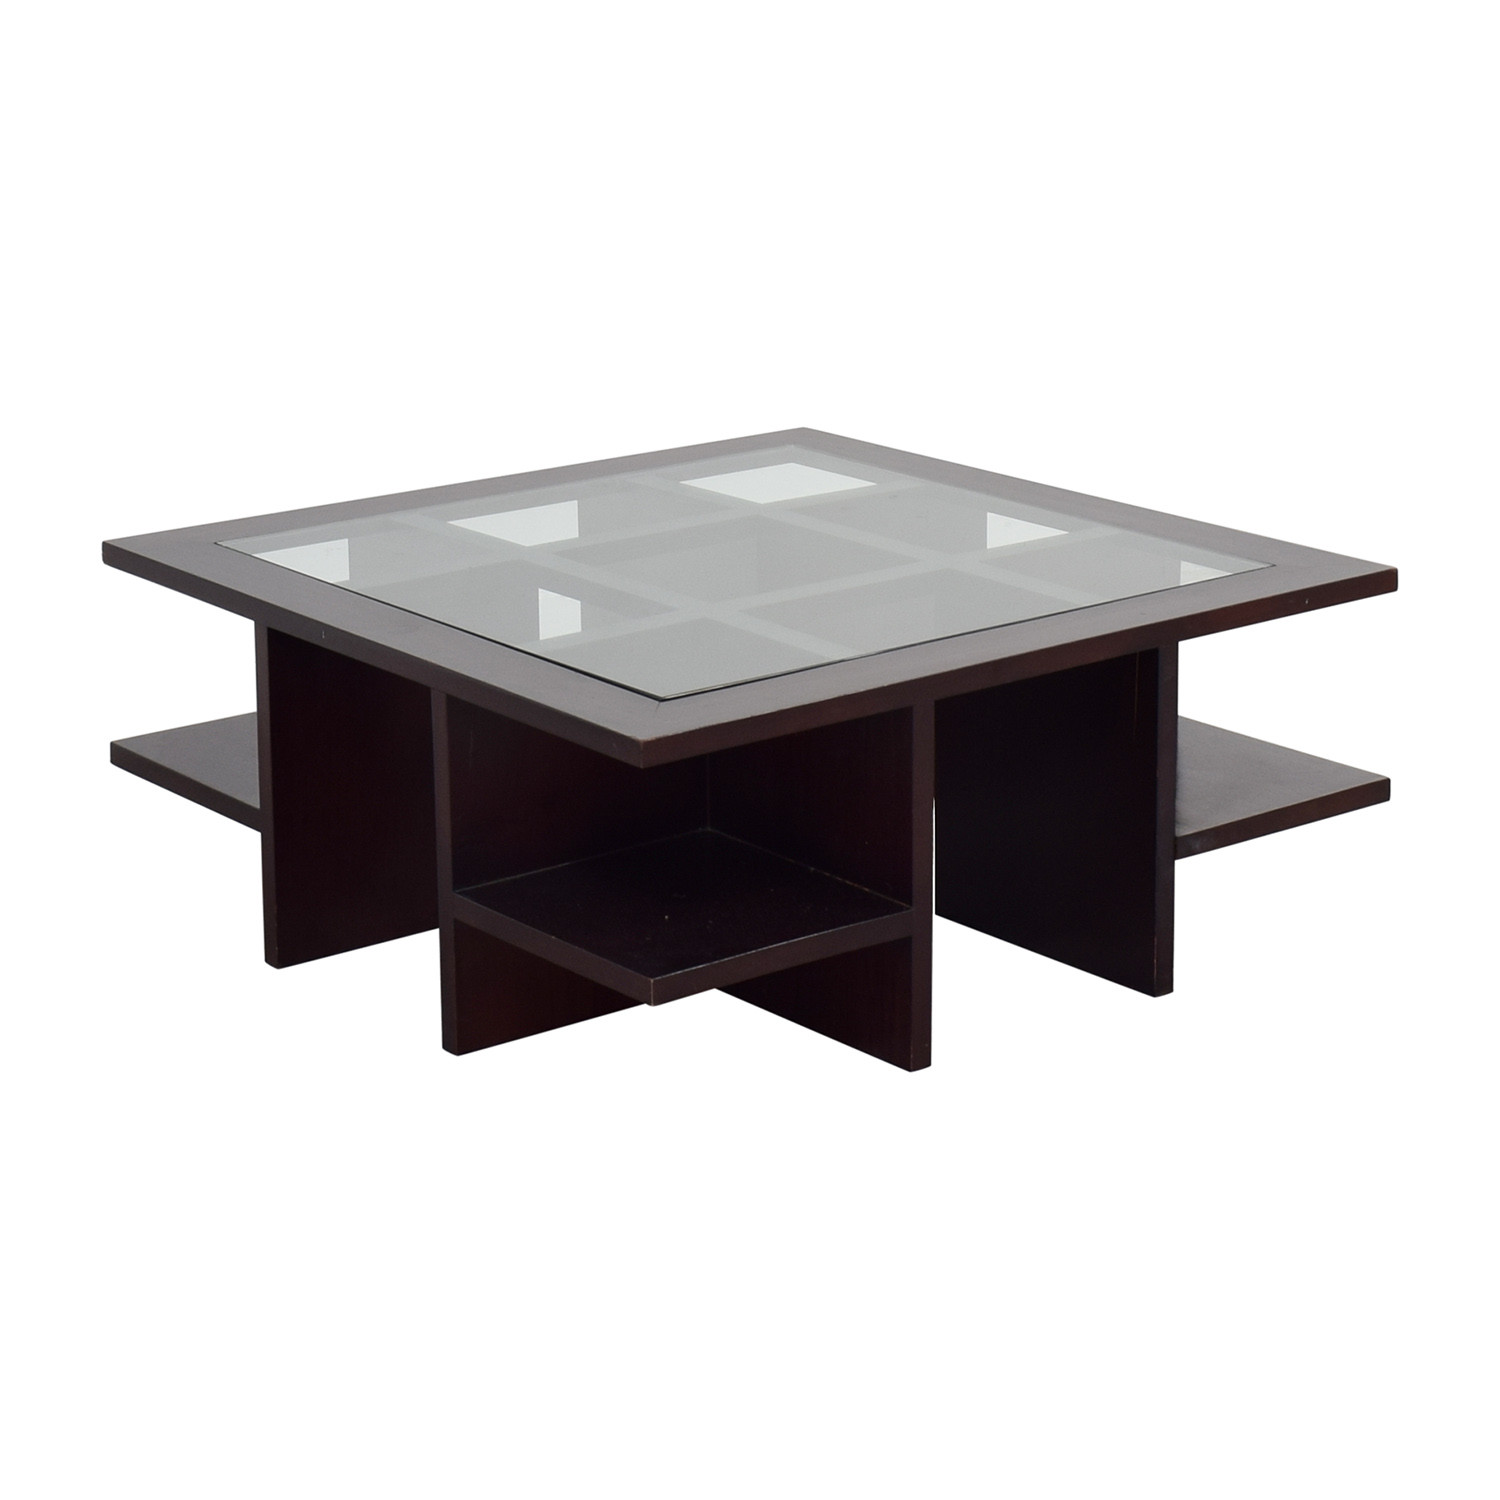 Best ideas about Wood And Glass Coffee Table . Save or Pin OFF Moie Moie Wood and Glass Coffee Table with Side Now.